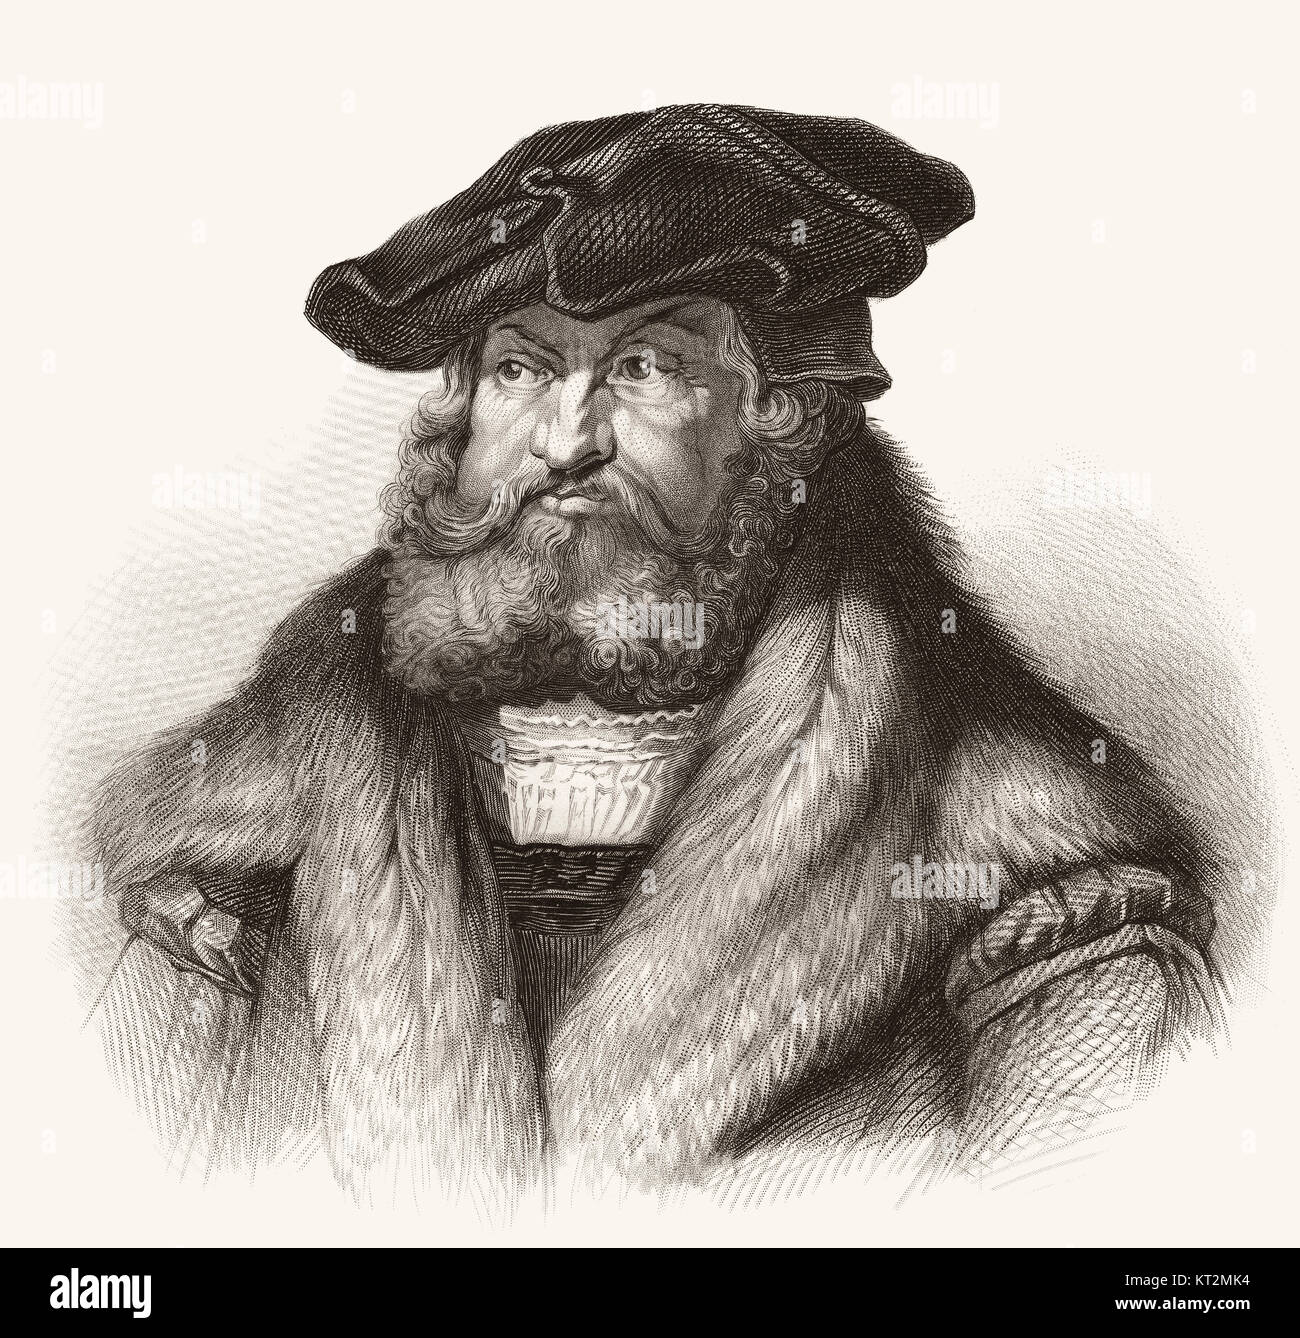 Frederick III or Frederick the Wise, 1463 - 1525, Elector of Saxony - Stock Image